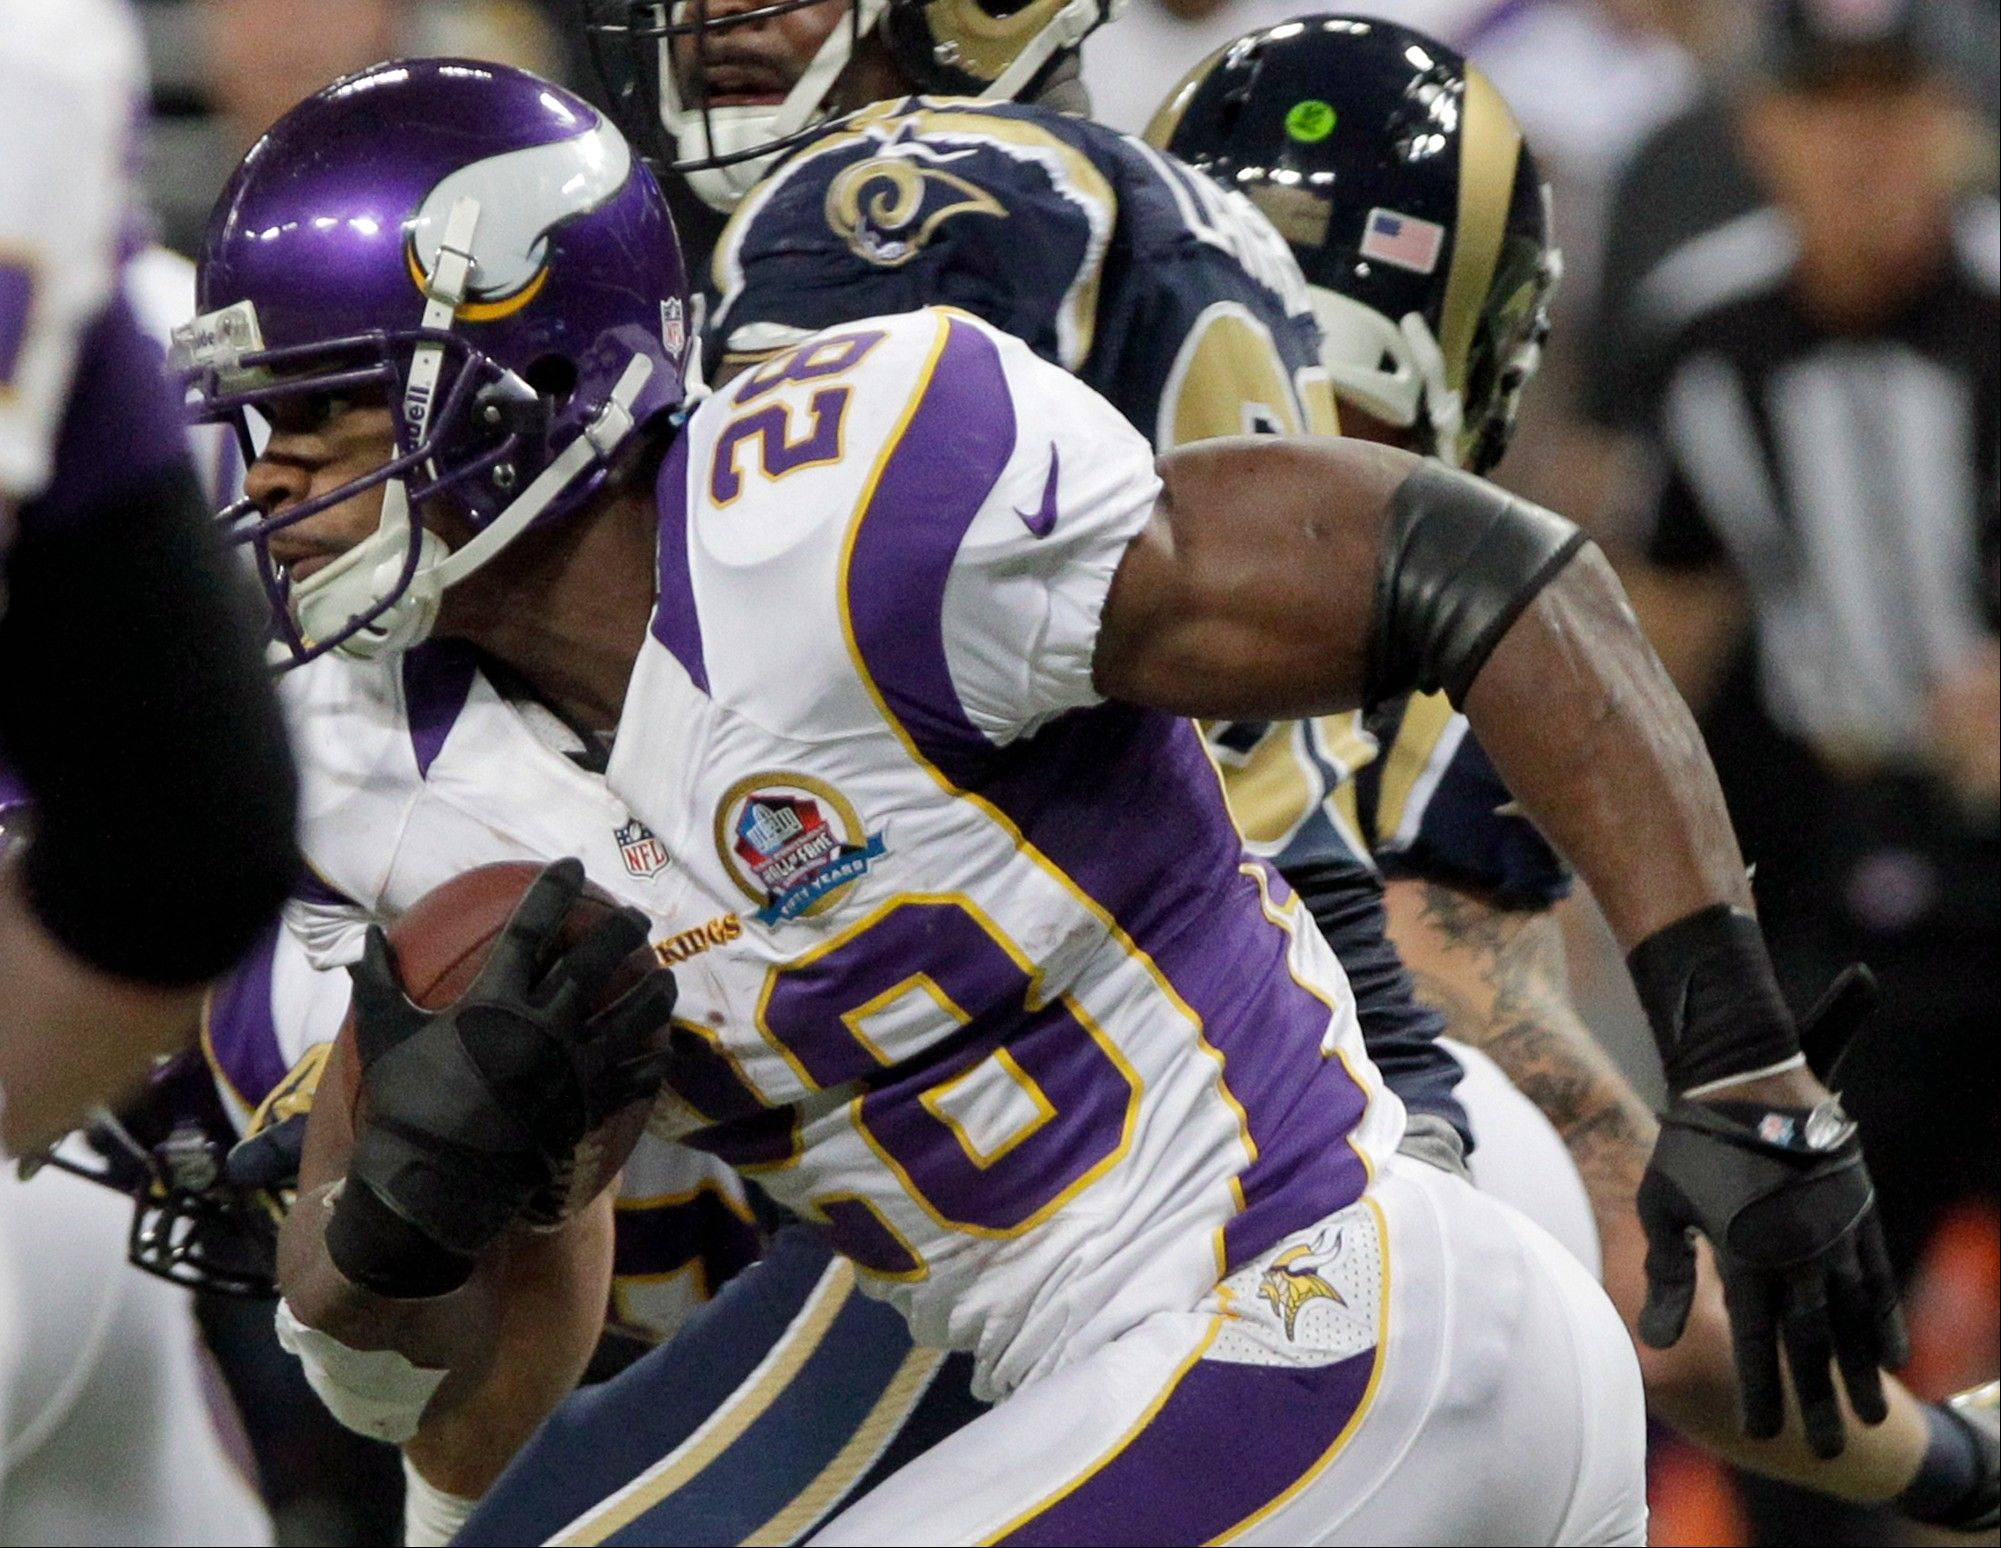 Minnesota Vikings running back Adrian Peterson (28) breaks free for an 82-yard touchdown run during the second quarter against the St. Louis Rams Sunday in St. Louis.